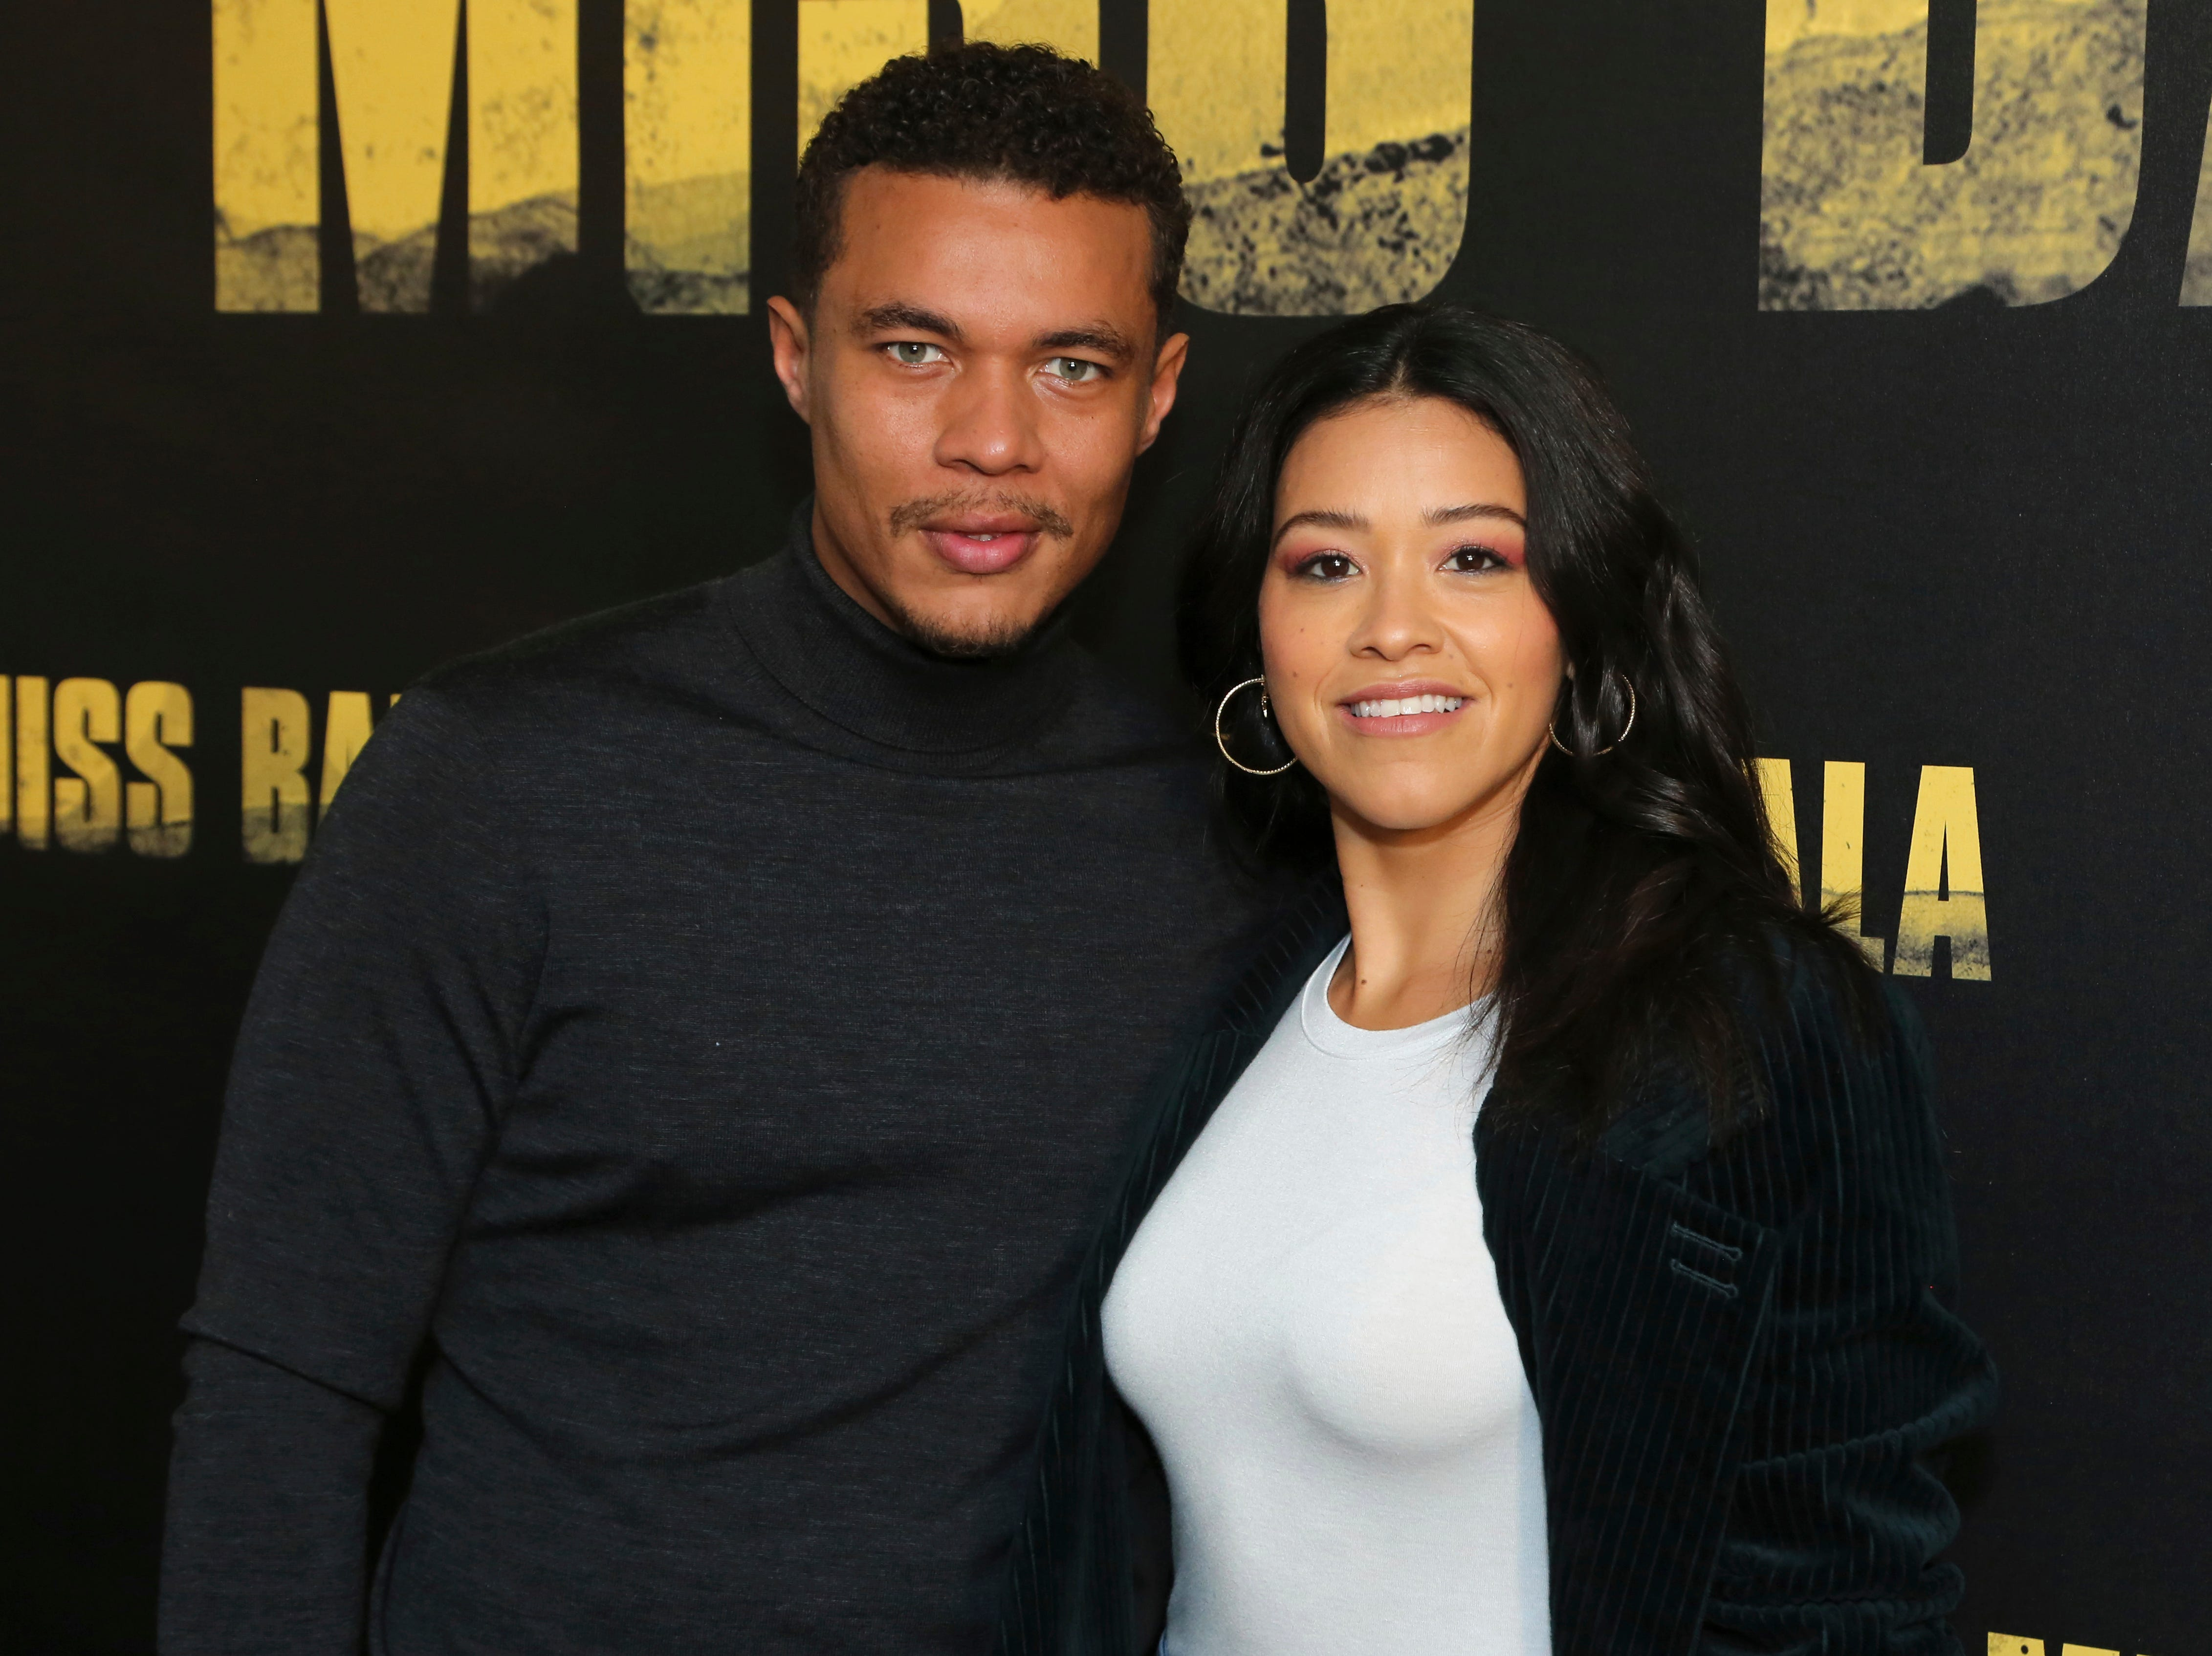 """Ismael Cruz Cordova, left, and Gina Rodriguez pose for a photo at the """"Miss Bala"""" Photo Call at The London West Hollywood on Sunday, Jan. 13, 2019 in West Hollywood, Calif."""